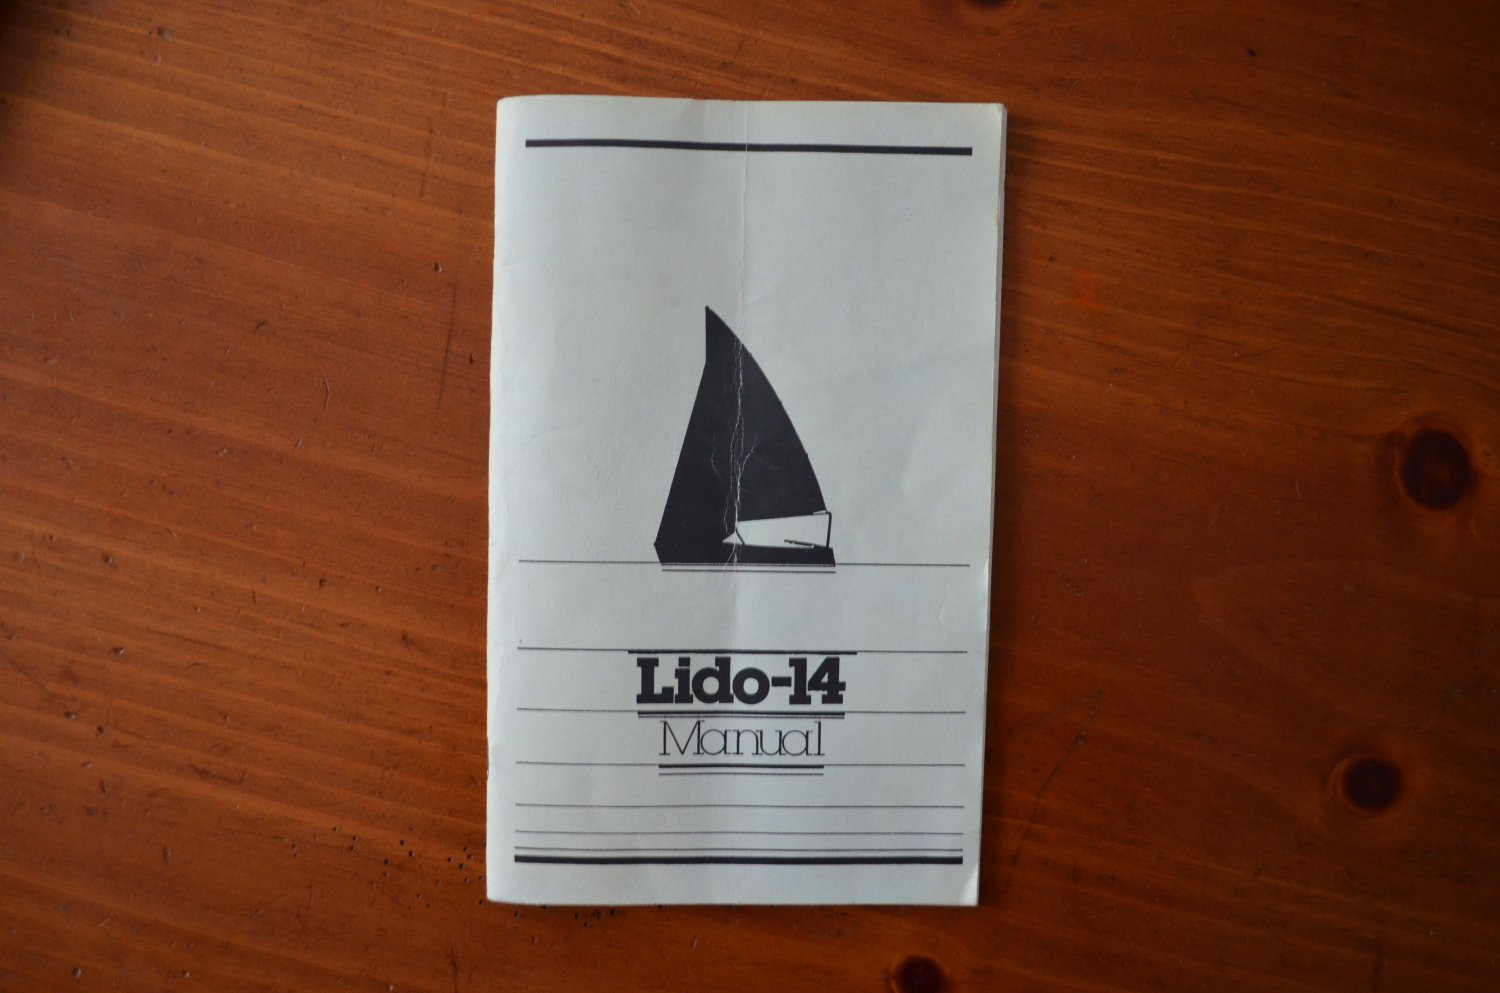 Lido14 Manual Booklet UCI Sailing Instructional Manual